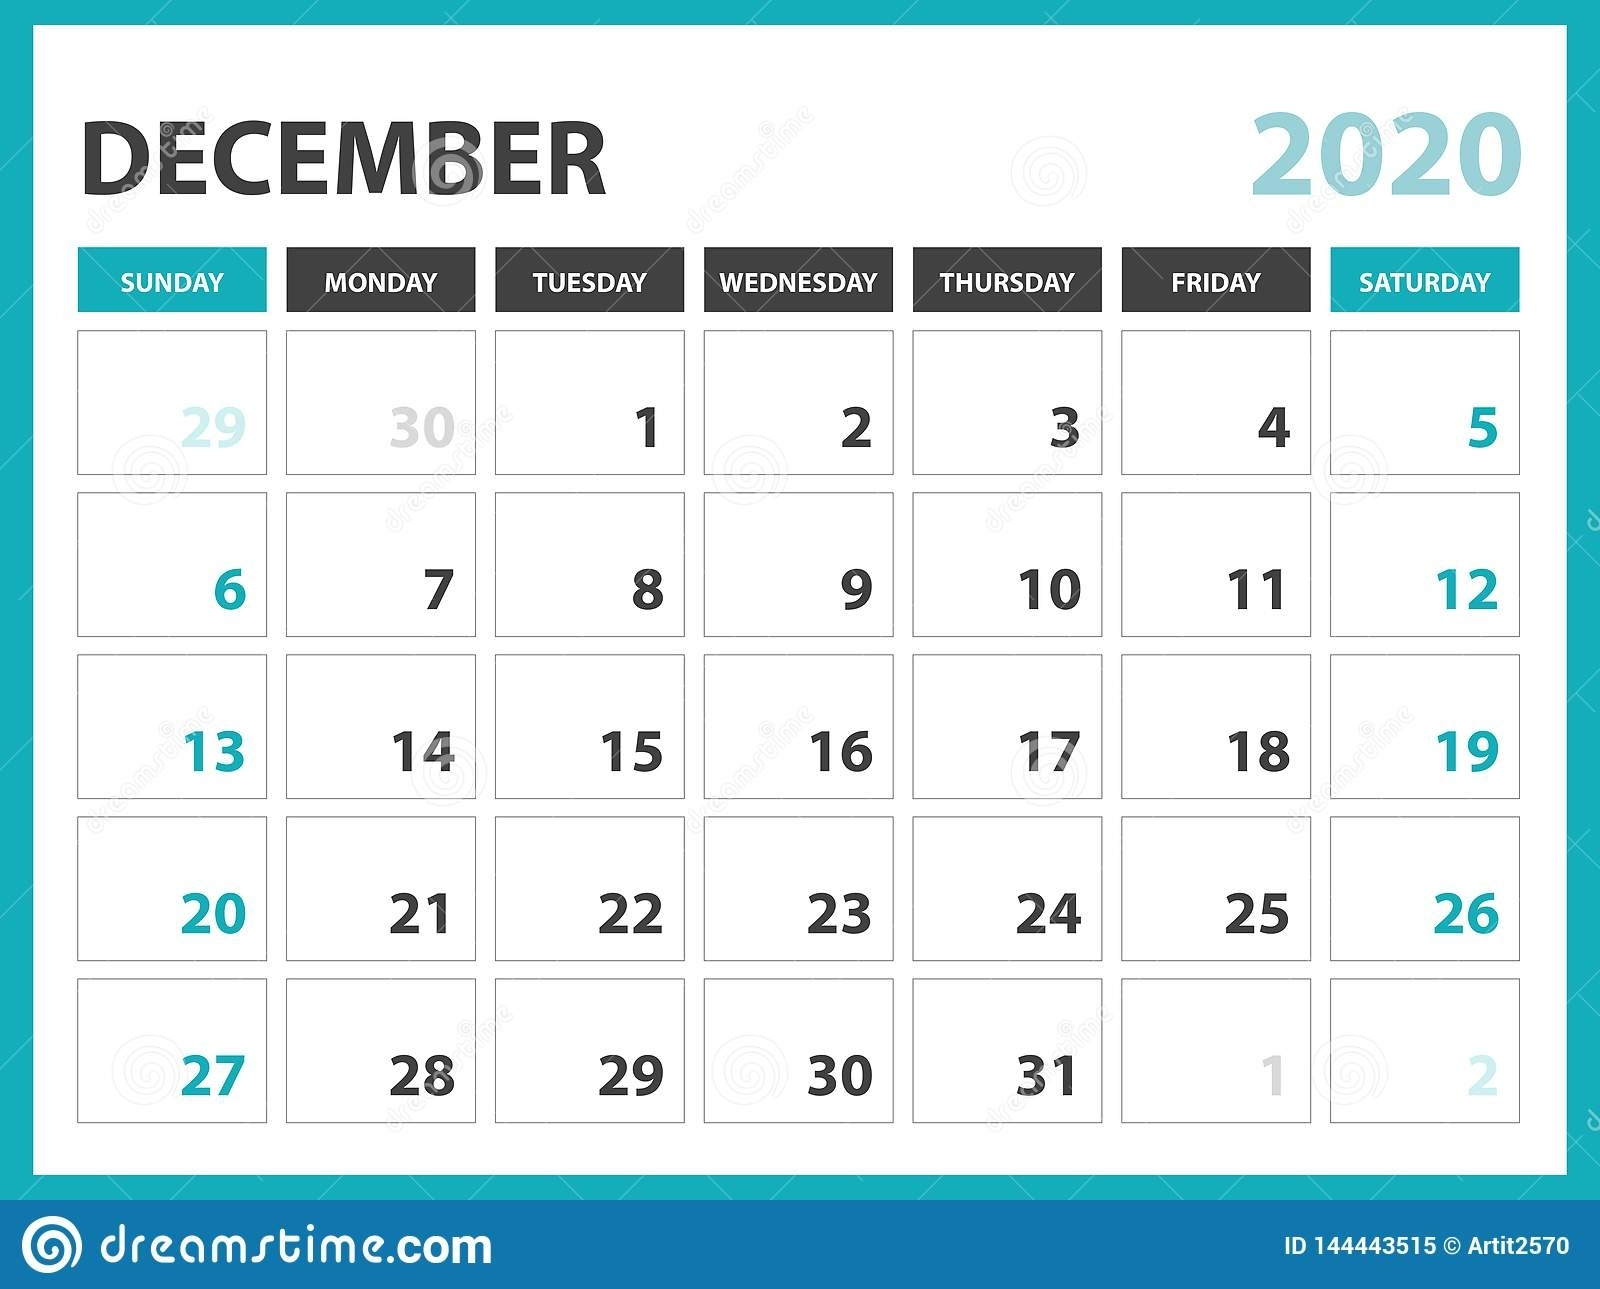 Desk Calendar Layout Size 8 X 6 Inch, December 2020 Calendar